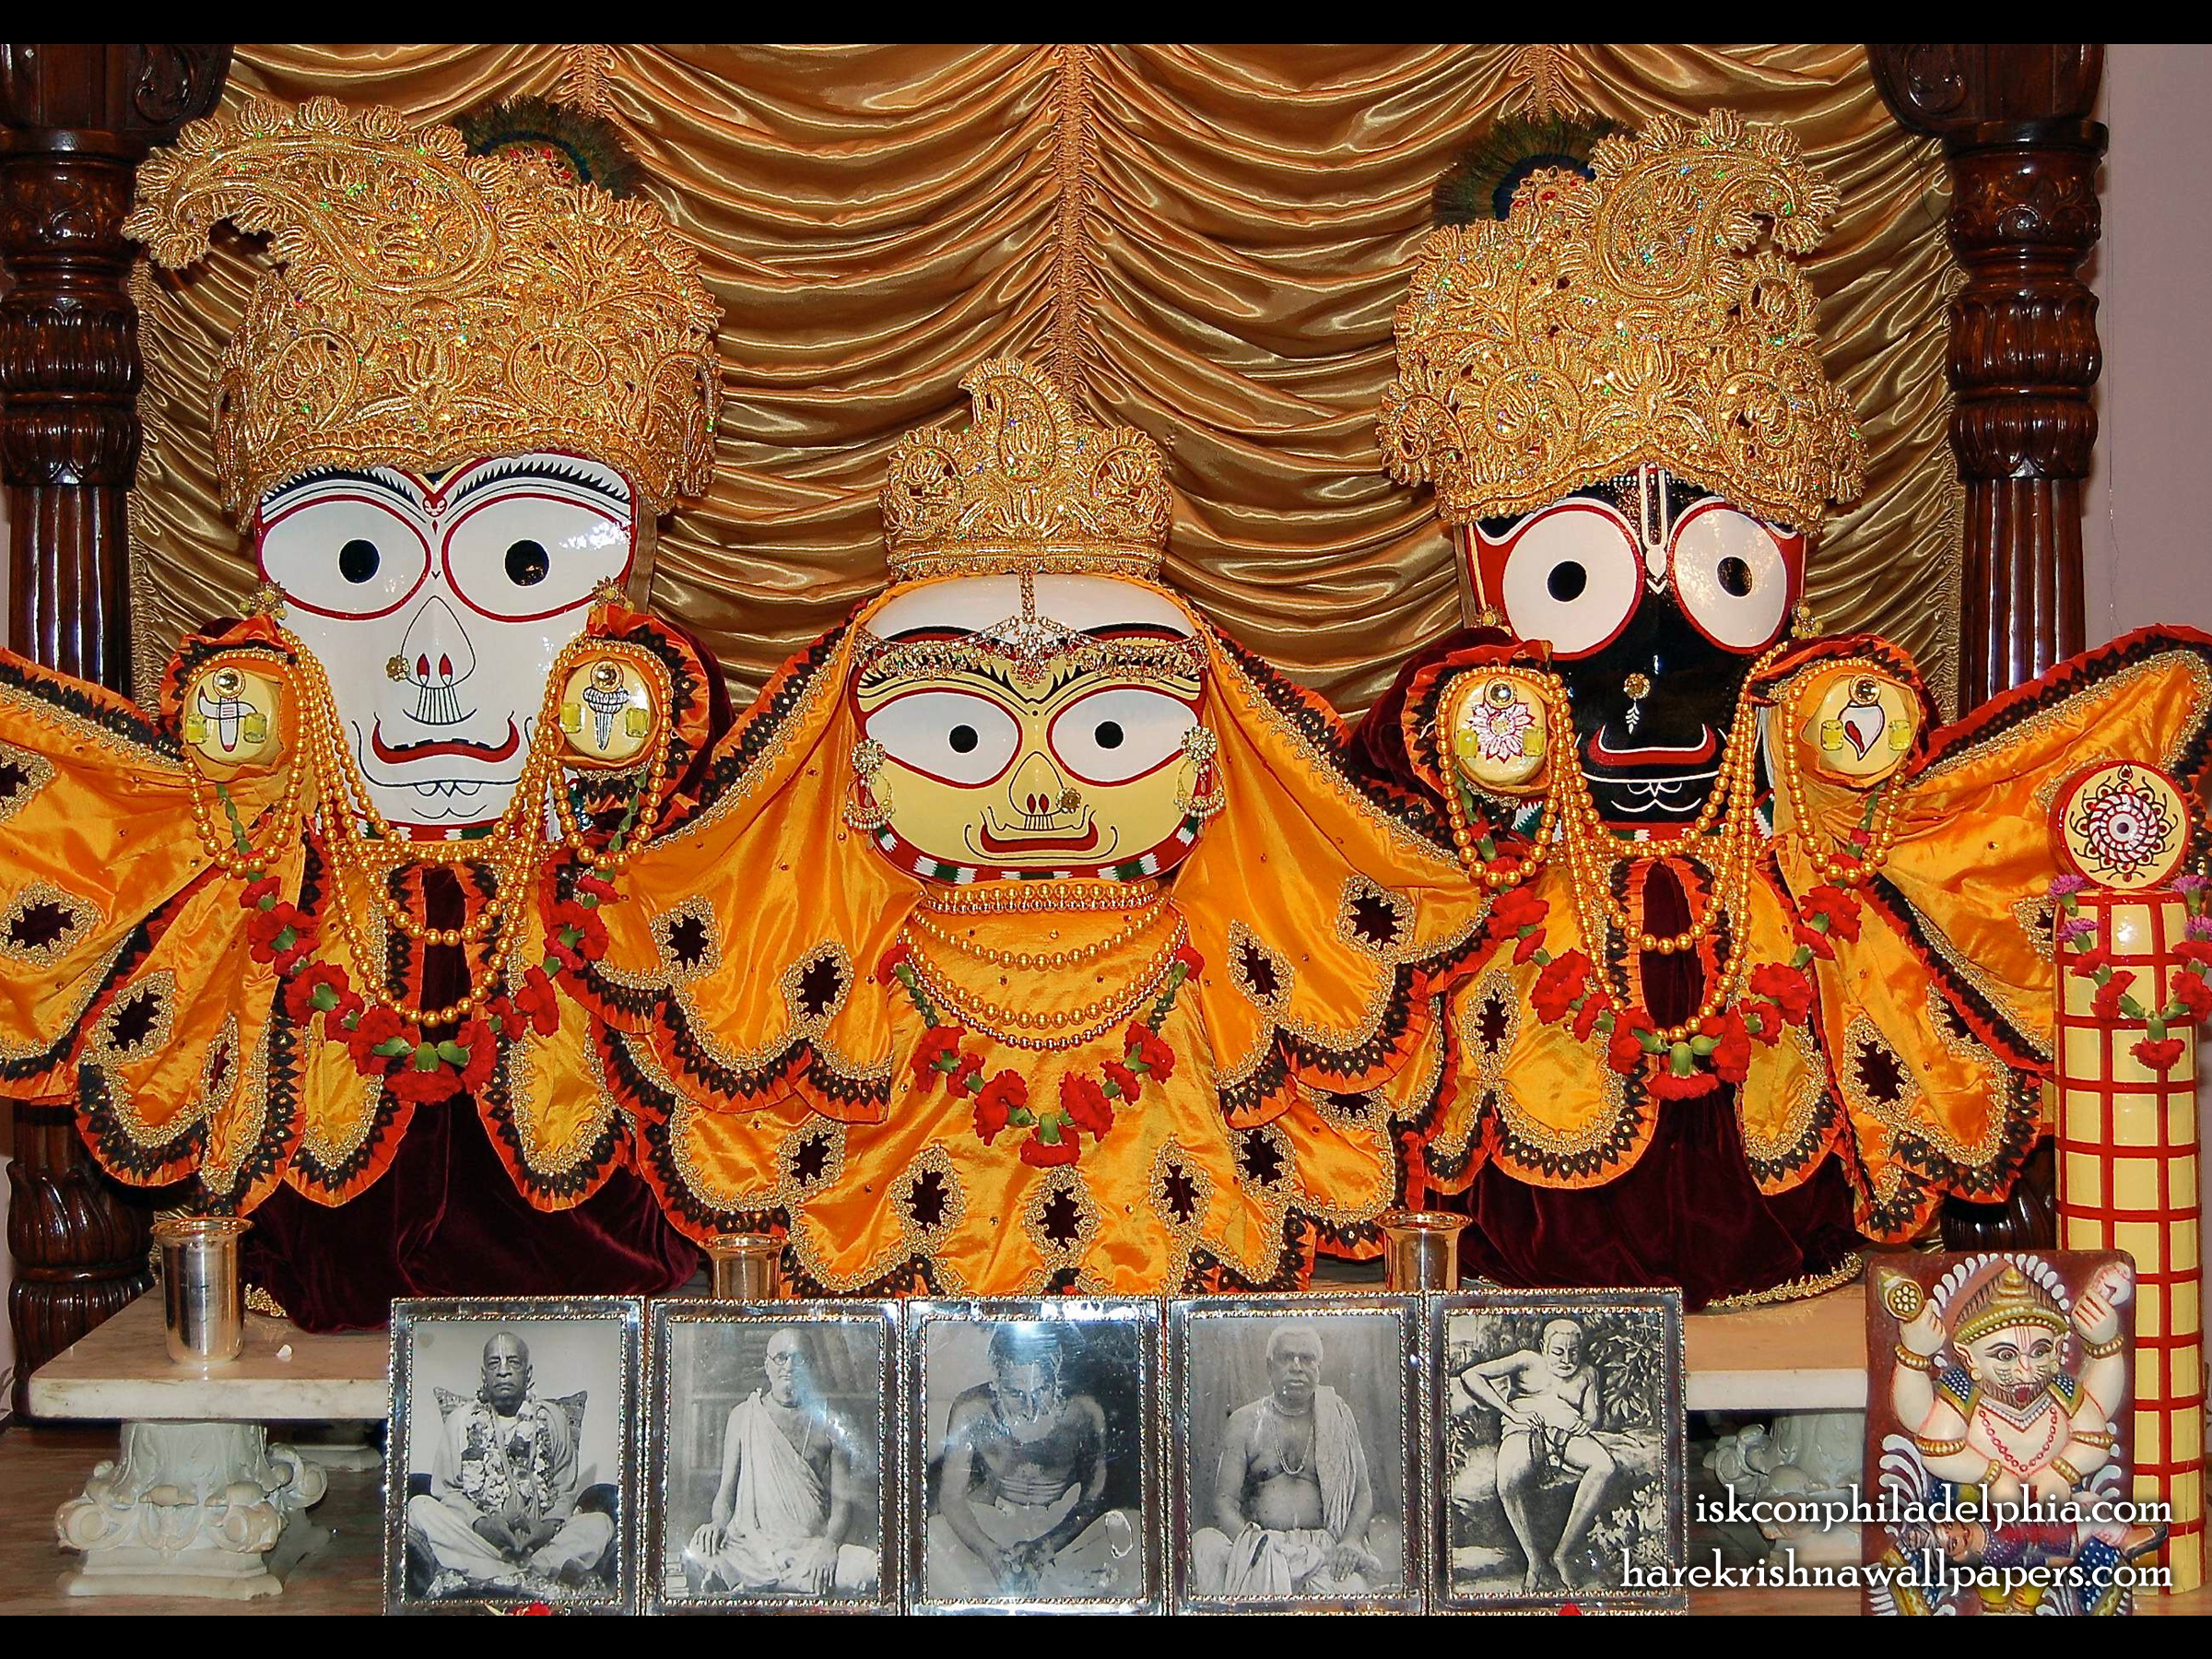 Jagannath Baladeva Subhadra Wallpaper (003) Size 2400x1800 Download